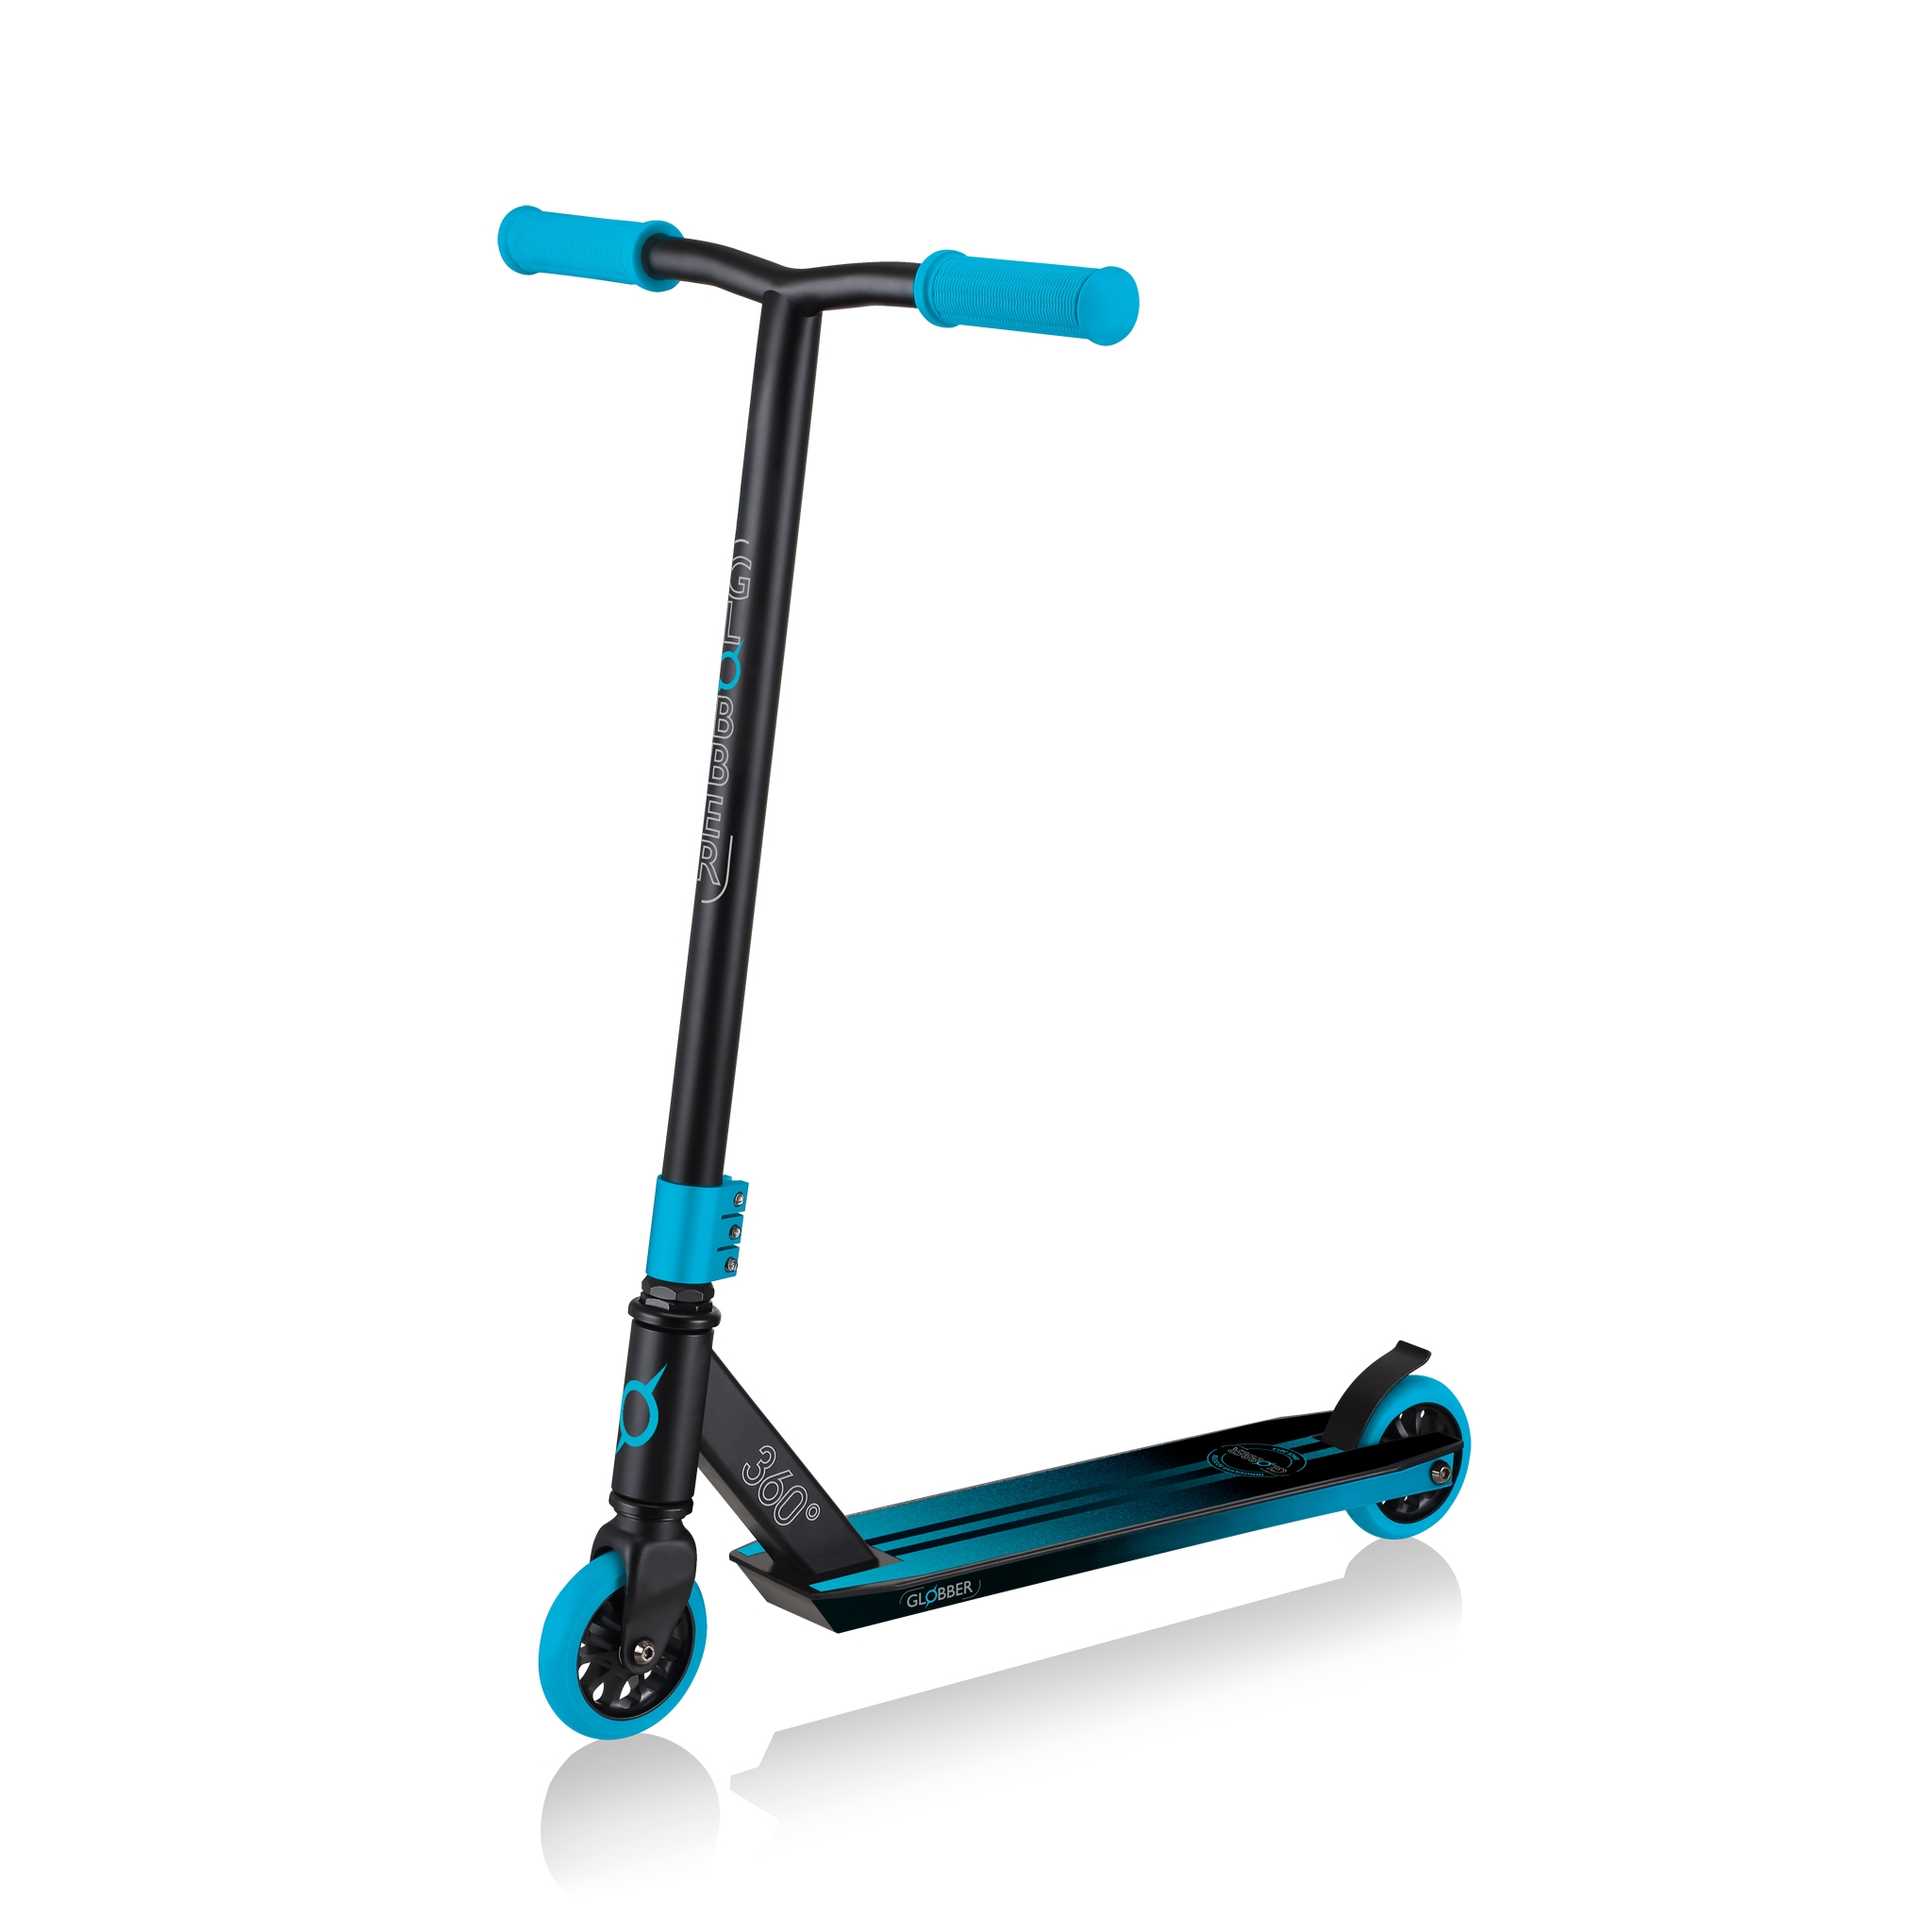 stunt-scooter-for-teens-Globber-GS360 5